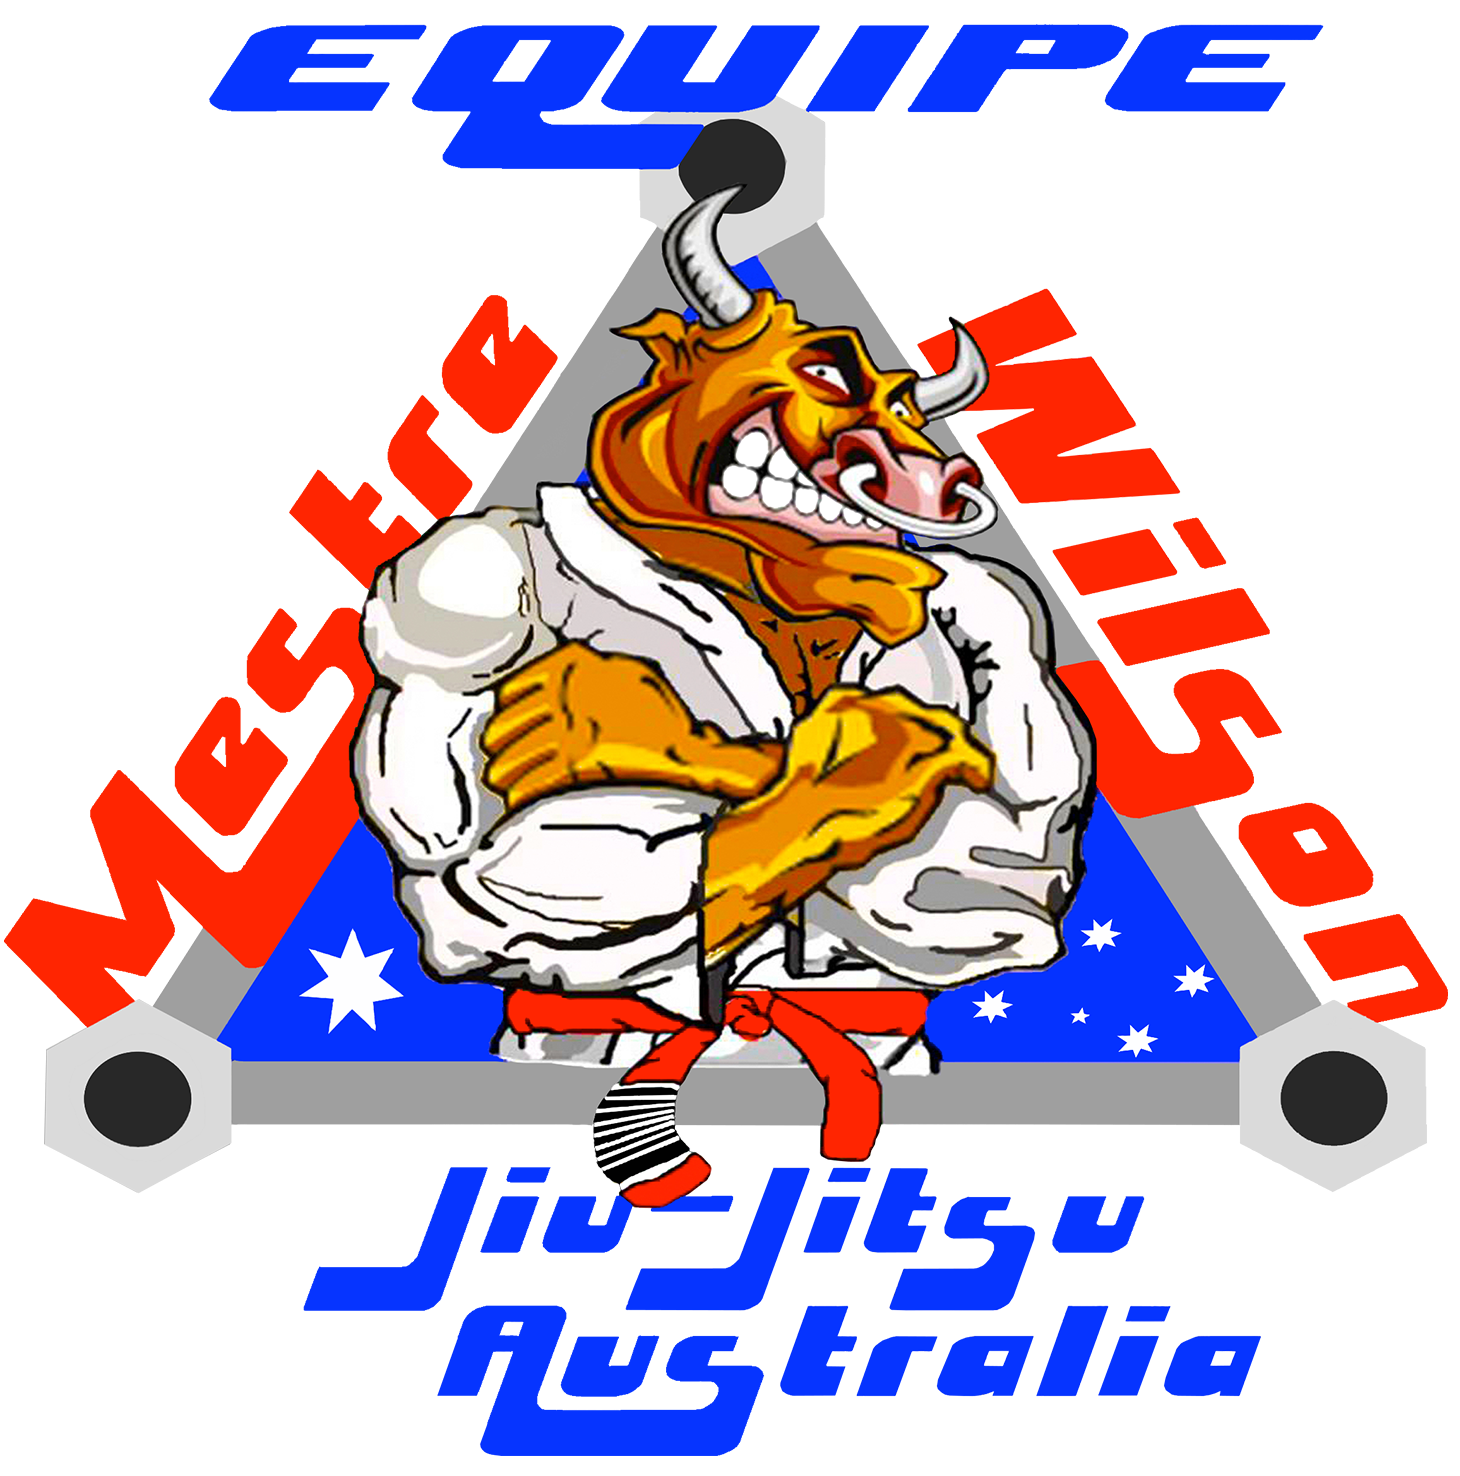 EQUIPE MESTRE WILSON JIU-JITSU AUSTRALIA